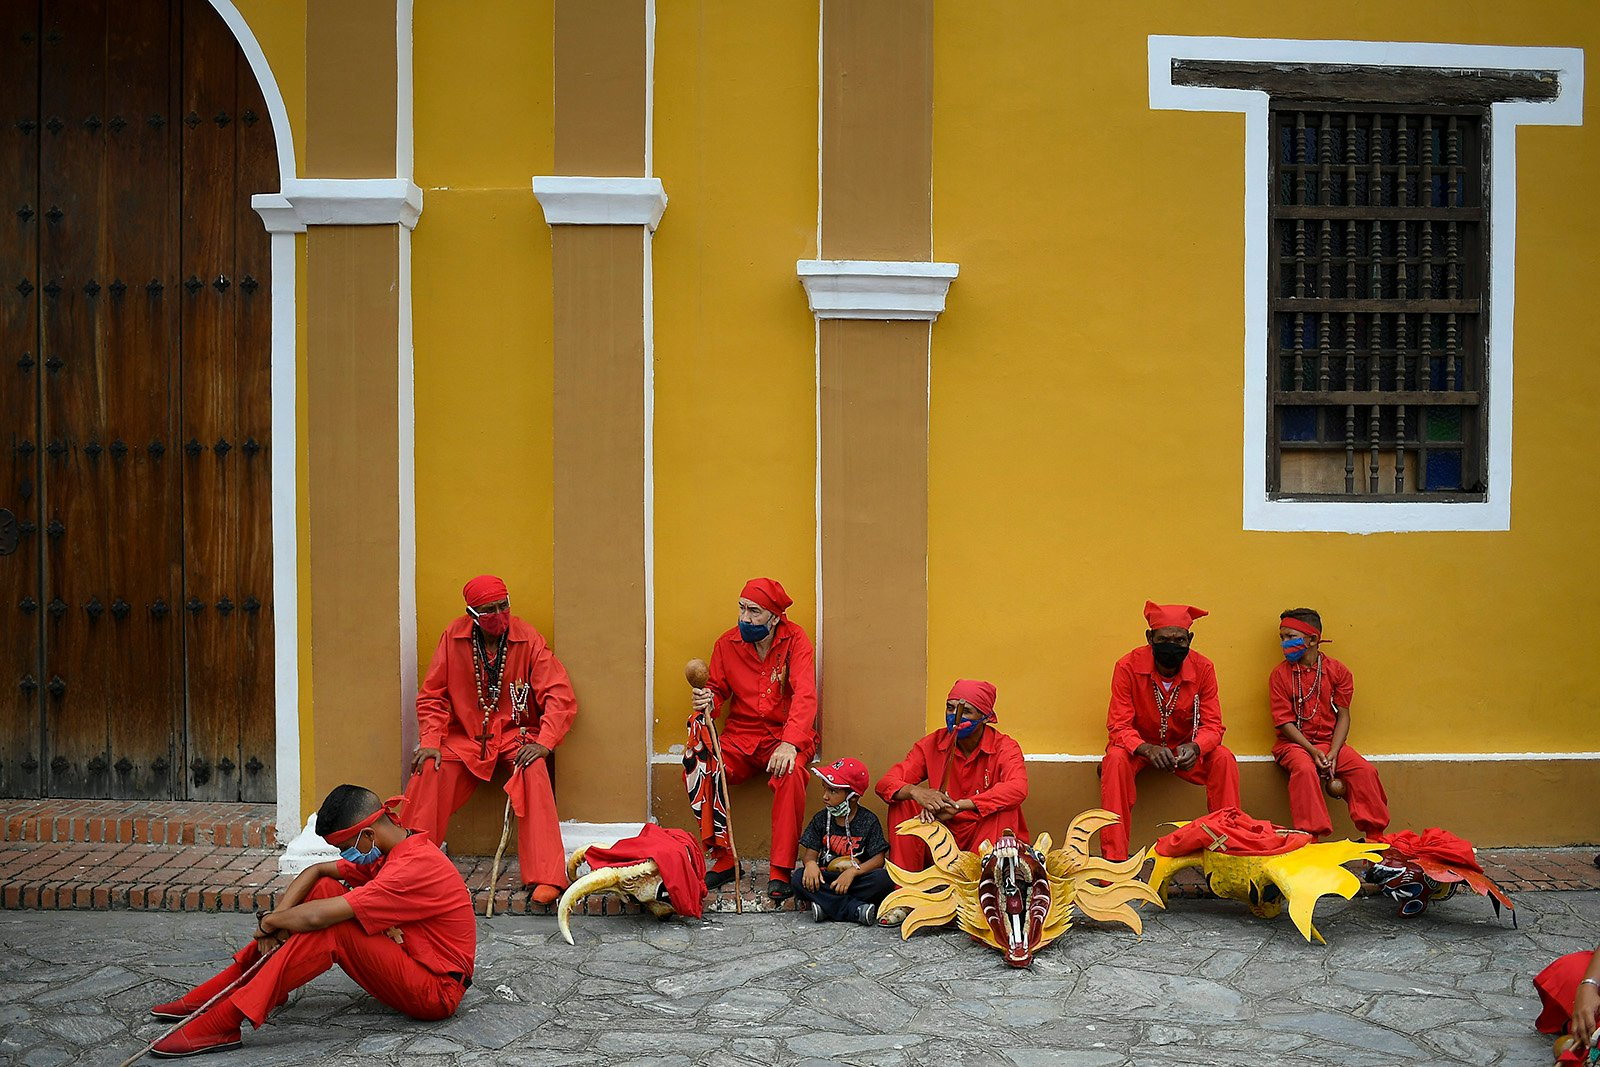 Dancing devils sit outside a local Catholic church listening to the Mass taking place inside, in San Francisco de Yare, Venezuela, Thursday, June 3, 2021, amid the coronavirus pandemic. The Carnival-like dance, in which the devils pay penance and ask for relief from physical ailments, symbolizes the ongoing struggle between good and evil. The tradition dates to 1742, when liberal priests in Venezuela used it to include African slaves who were not permitted to worship in the same church as their white masters.(AP Photo/Matias Delacroix)